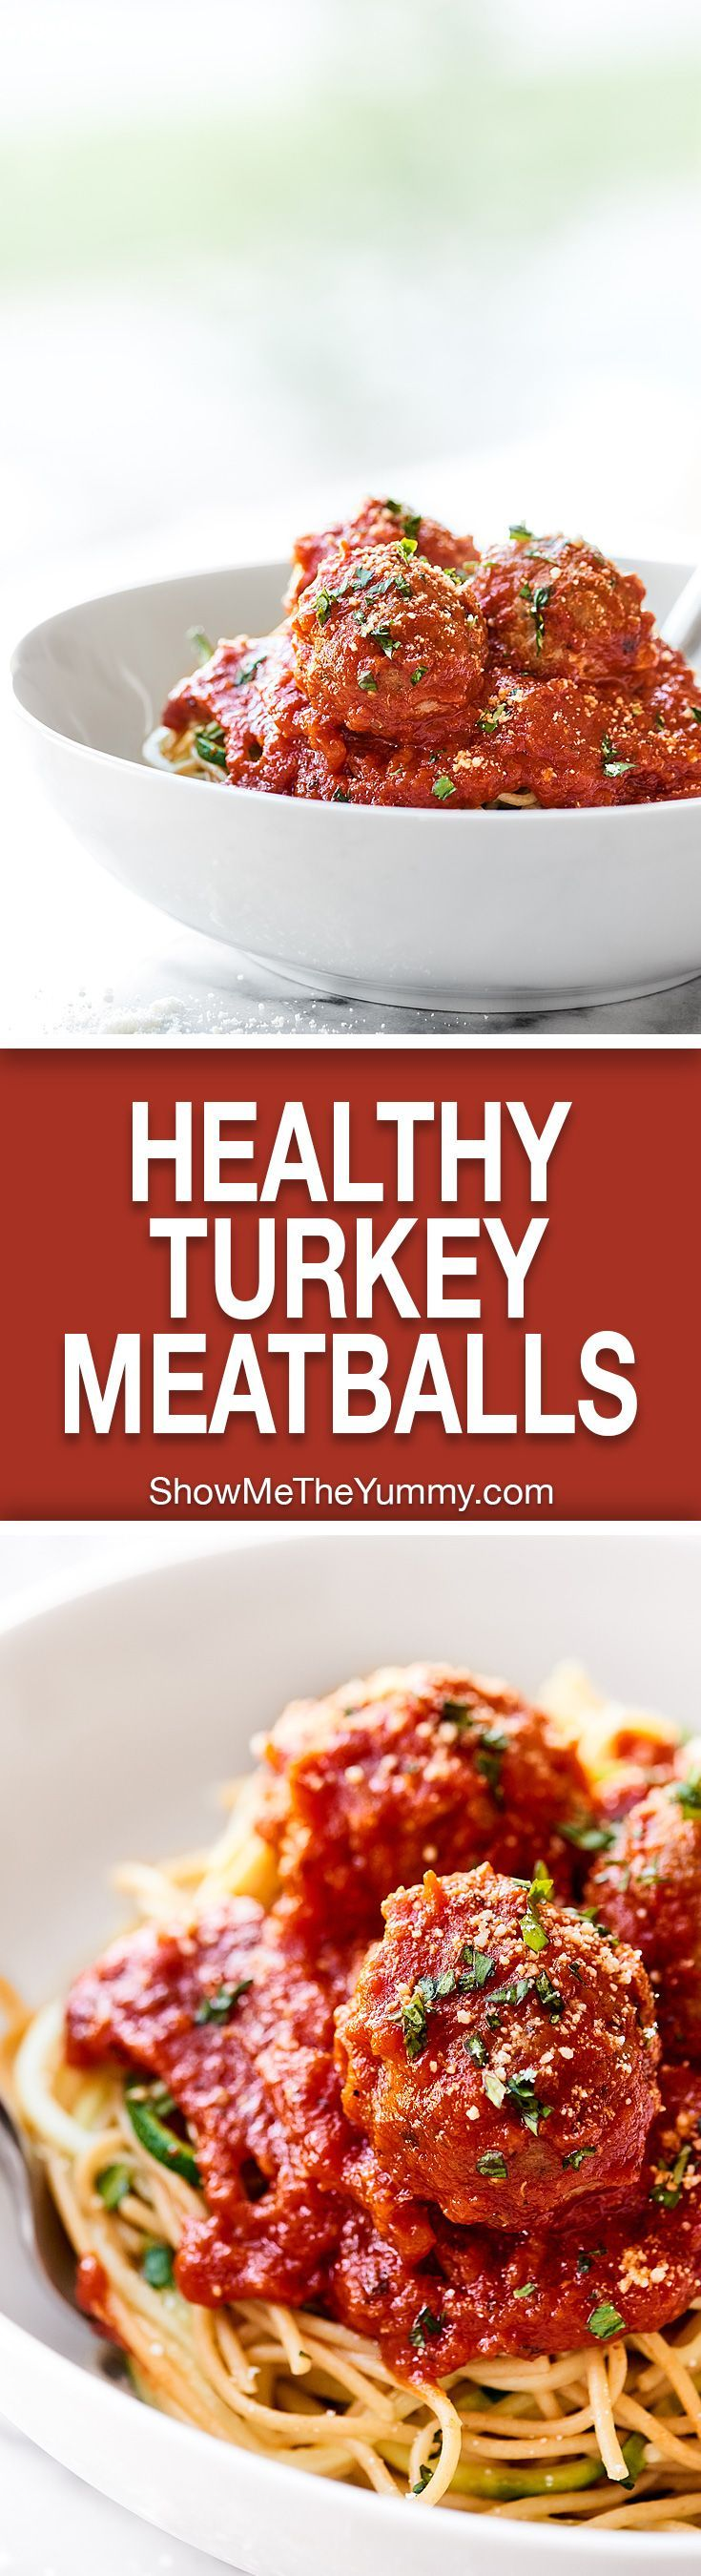 At only 60 calories, these Turkey Meatballs are the perfect, healthy, easy, weeknight meal. These are made without breadcrumbs, are gluten free, and are so juicy! http://showmetheyummy.com #glutenfree #turkeymeatballs